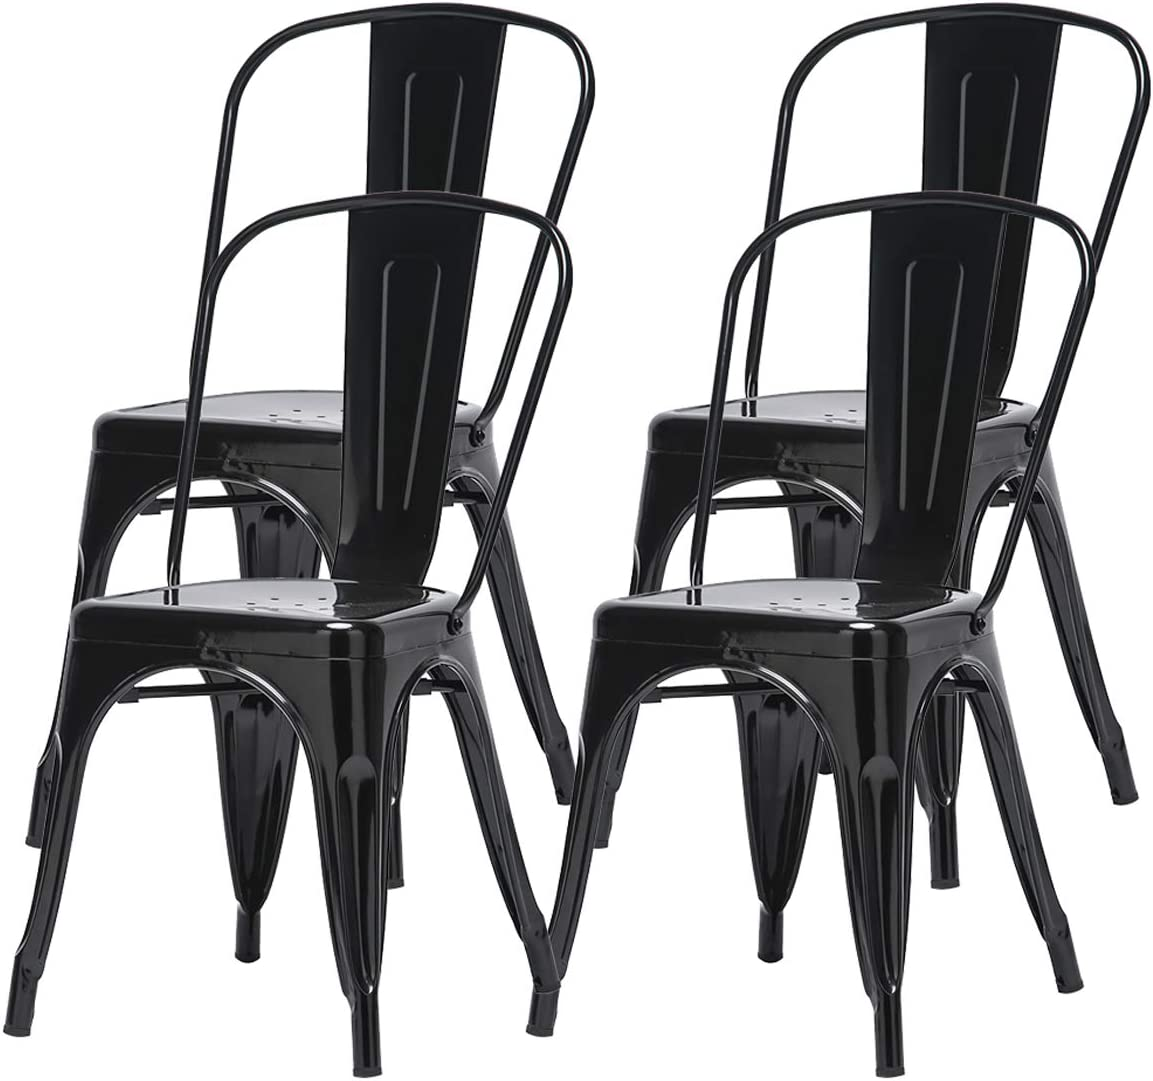 Set of 4 Tolix Black Garden Metal Chairs Stackable with Back Industrial Vintage Outdoor Set of 4 Black Metal Dining Chairs